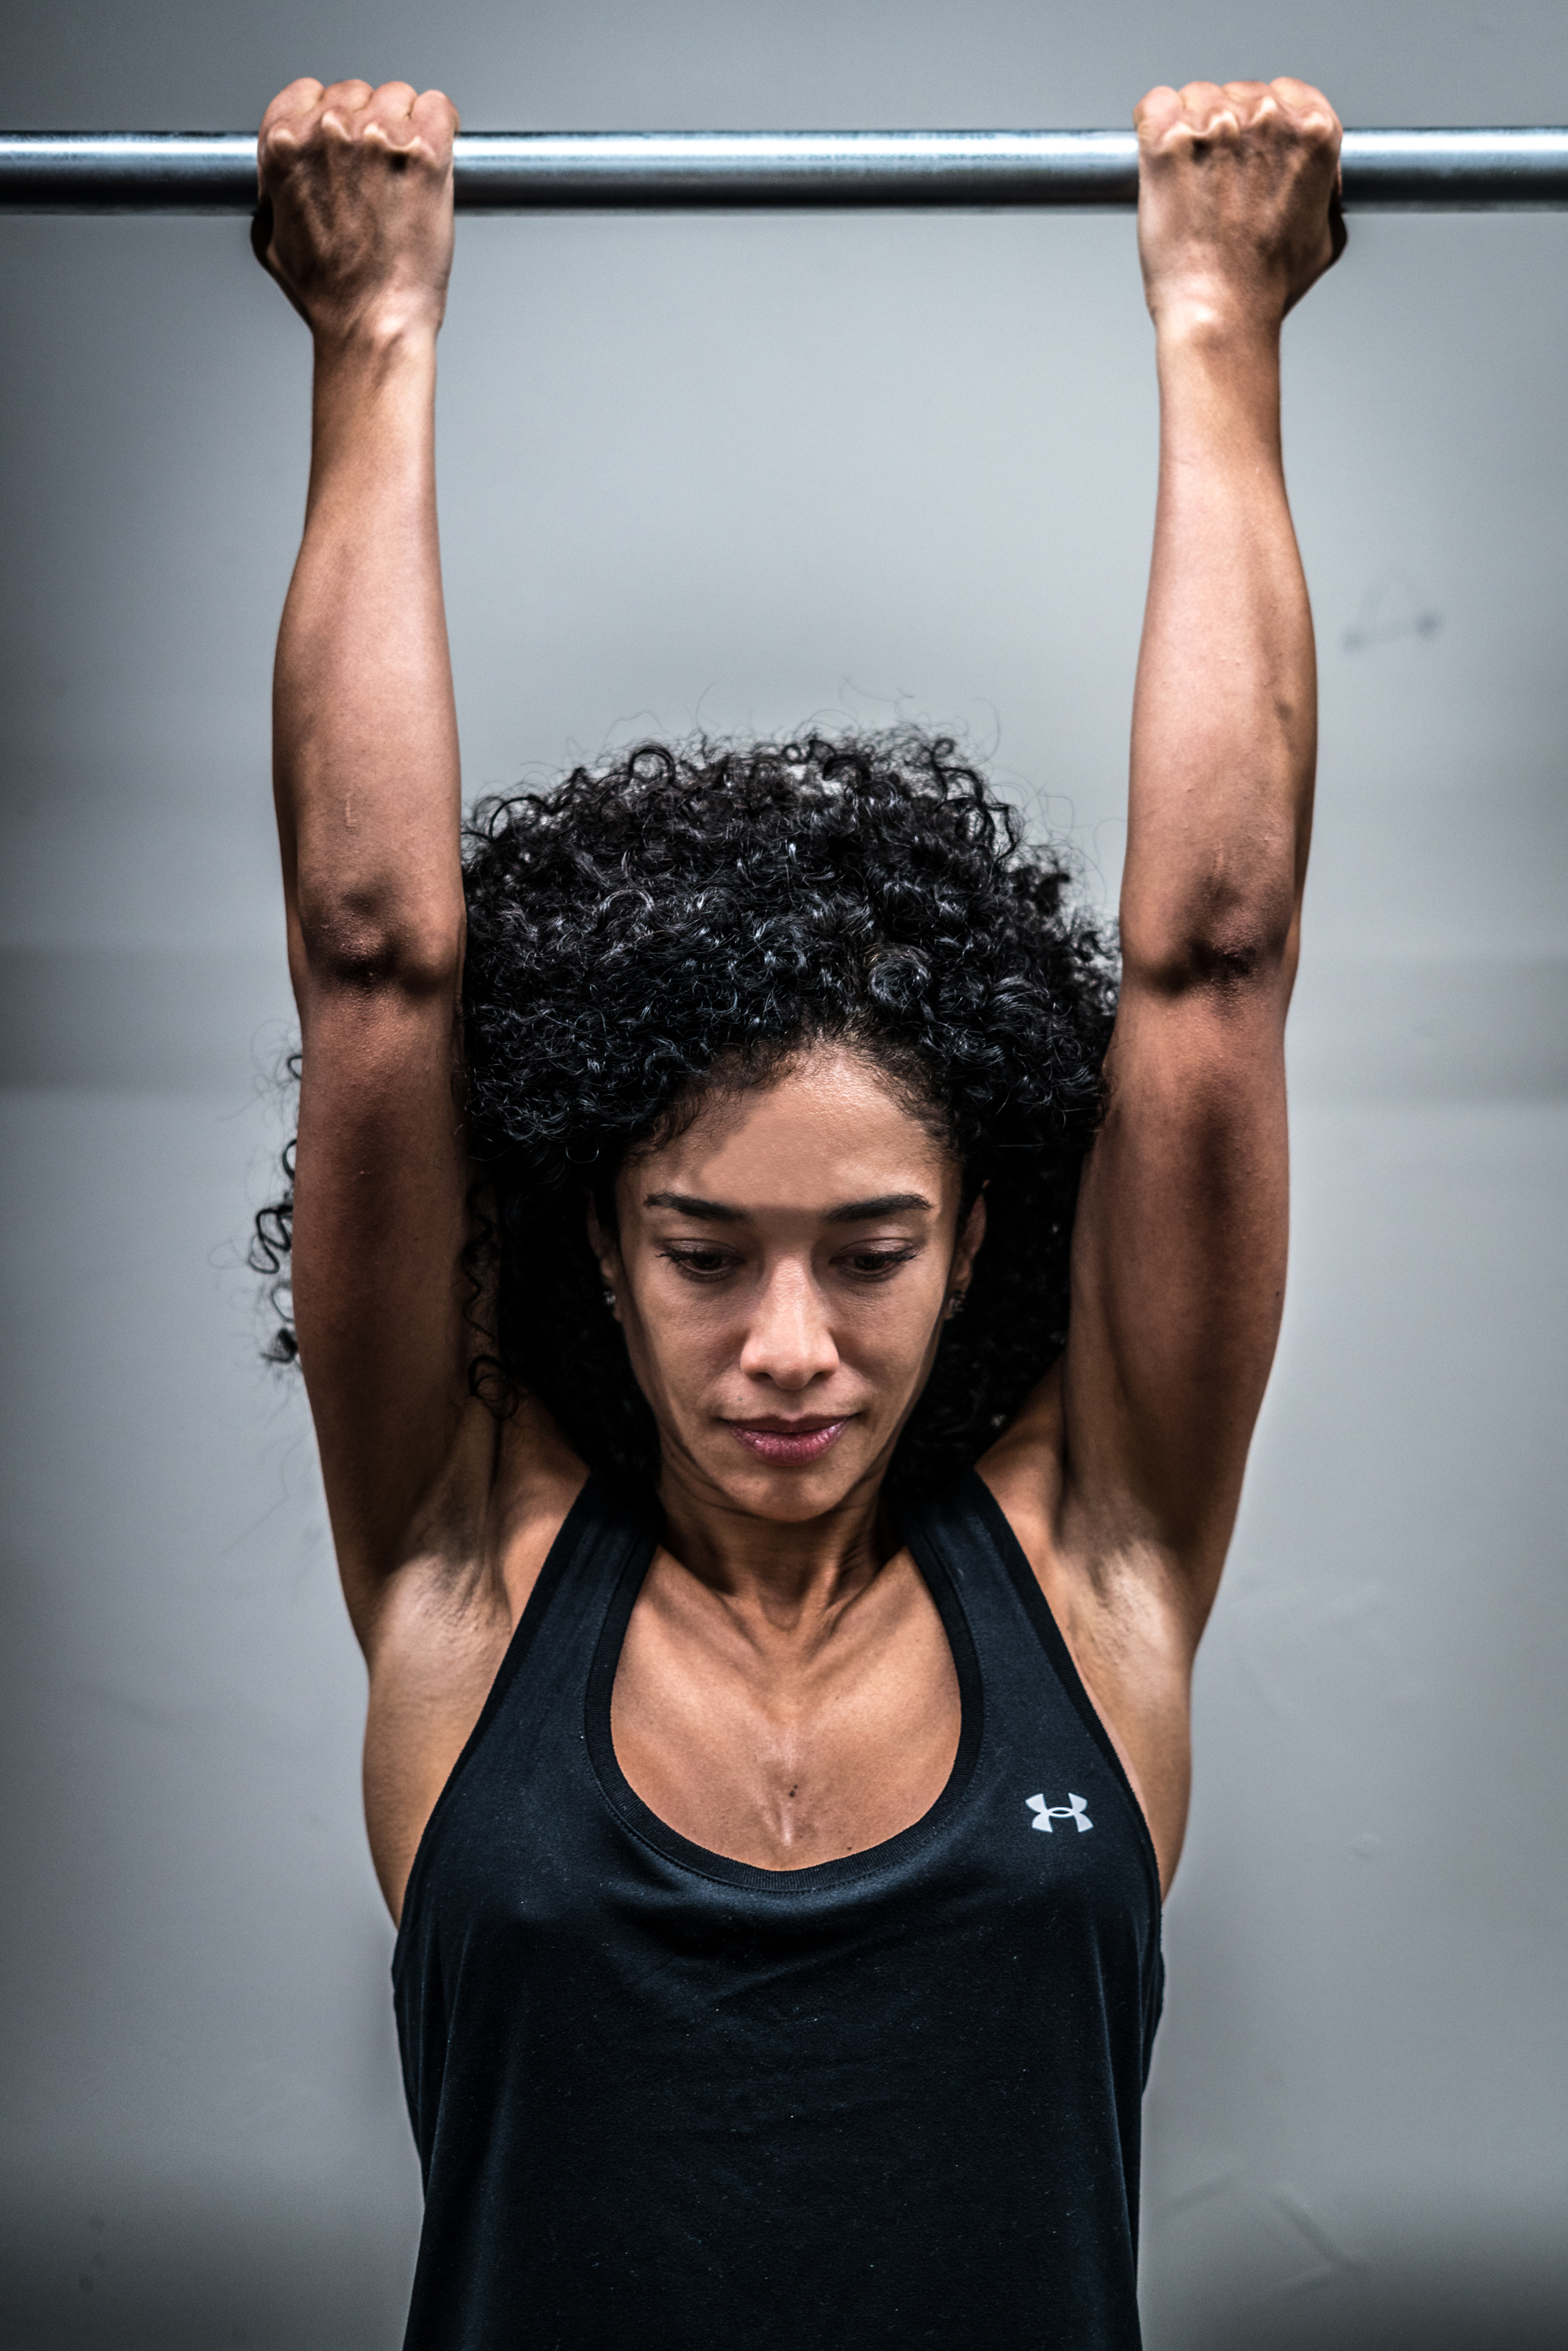 5524309d7d P.s. We absolutely love how she s sharing   educating the community on some  biggest myths that surround fitness and lifting weights.